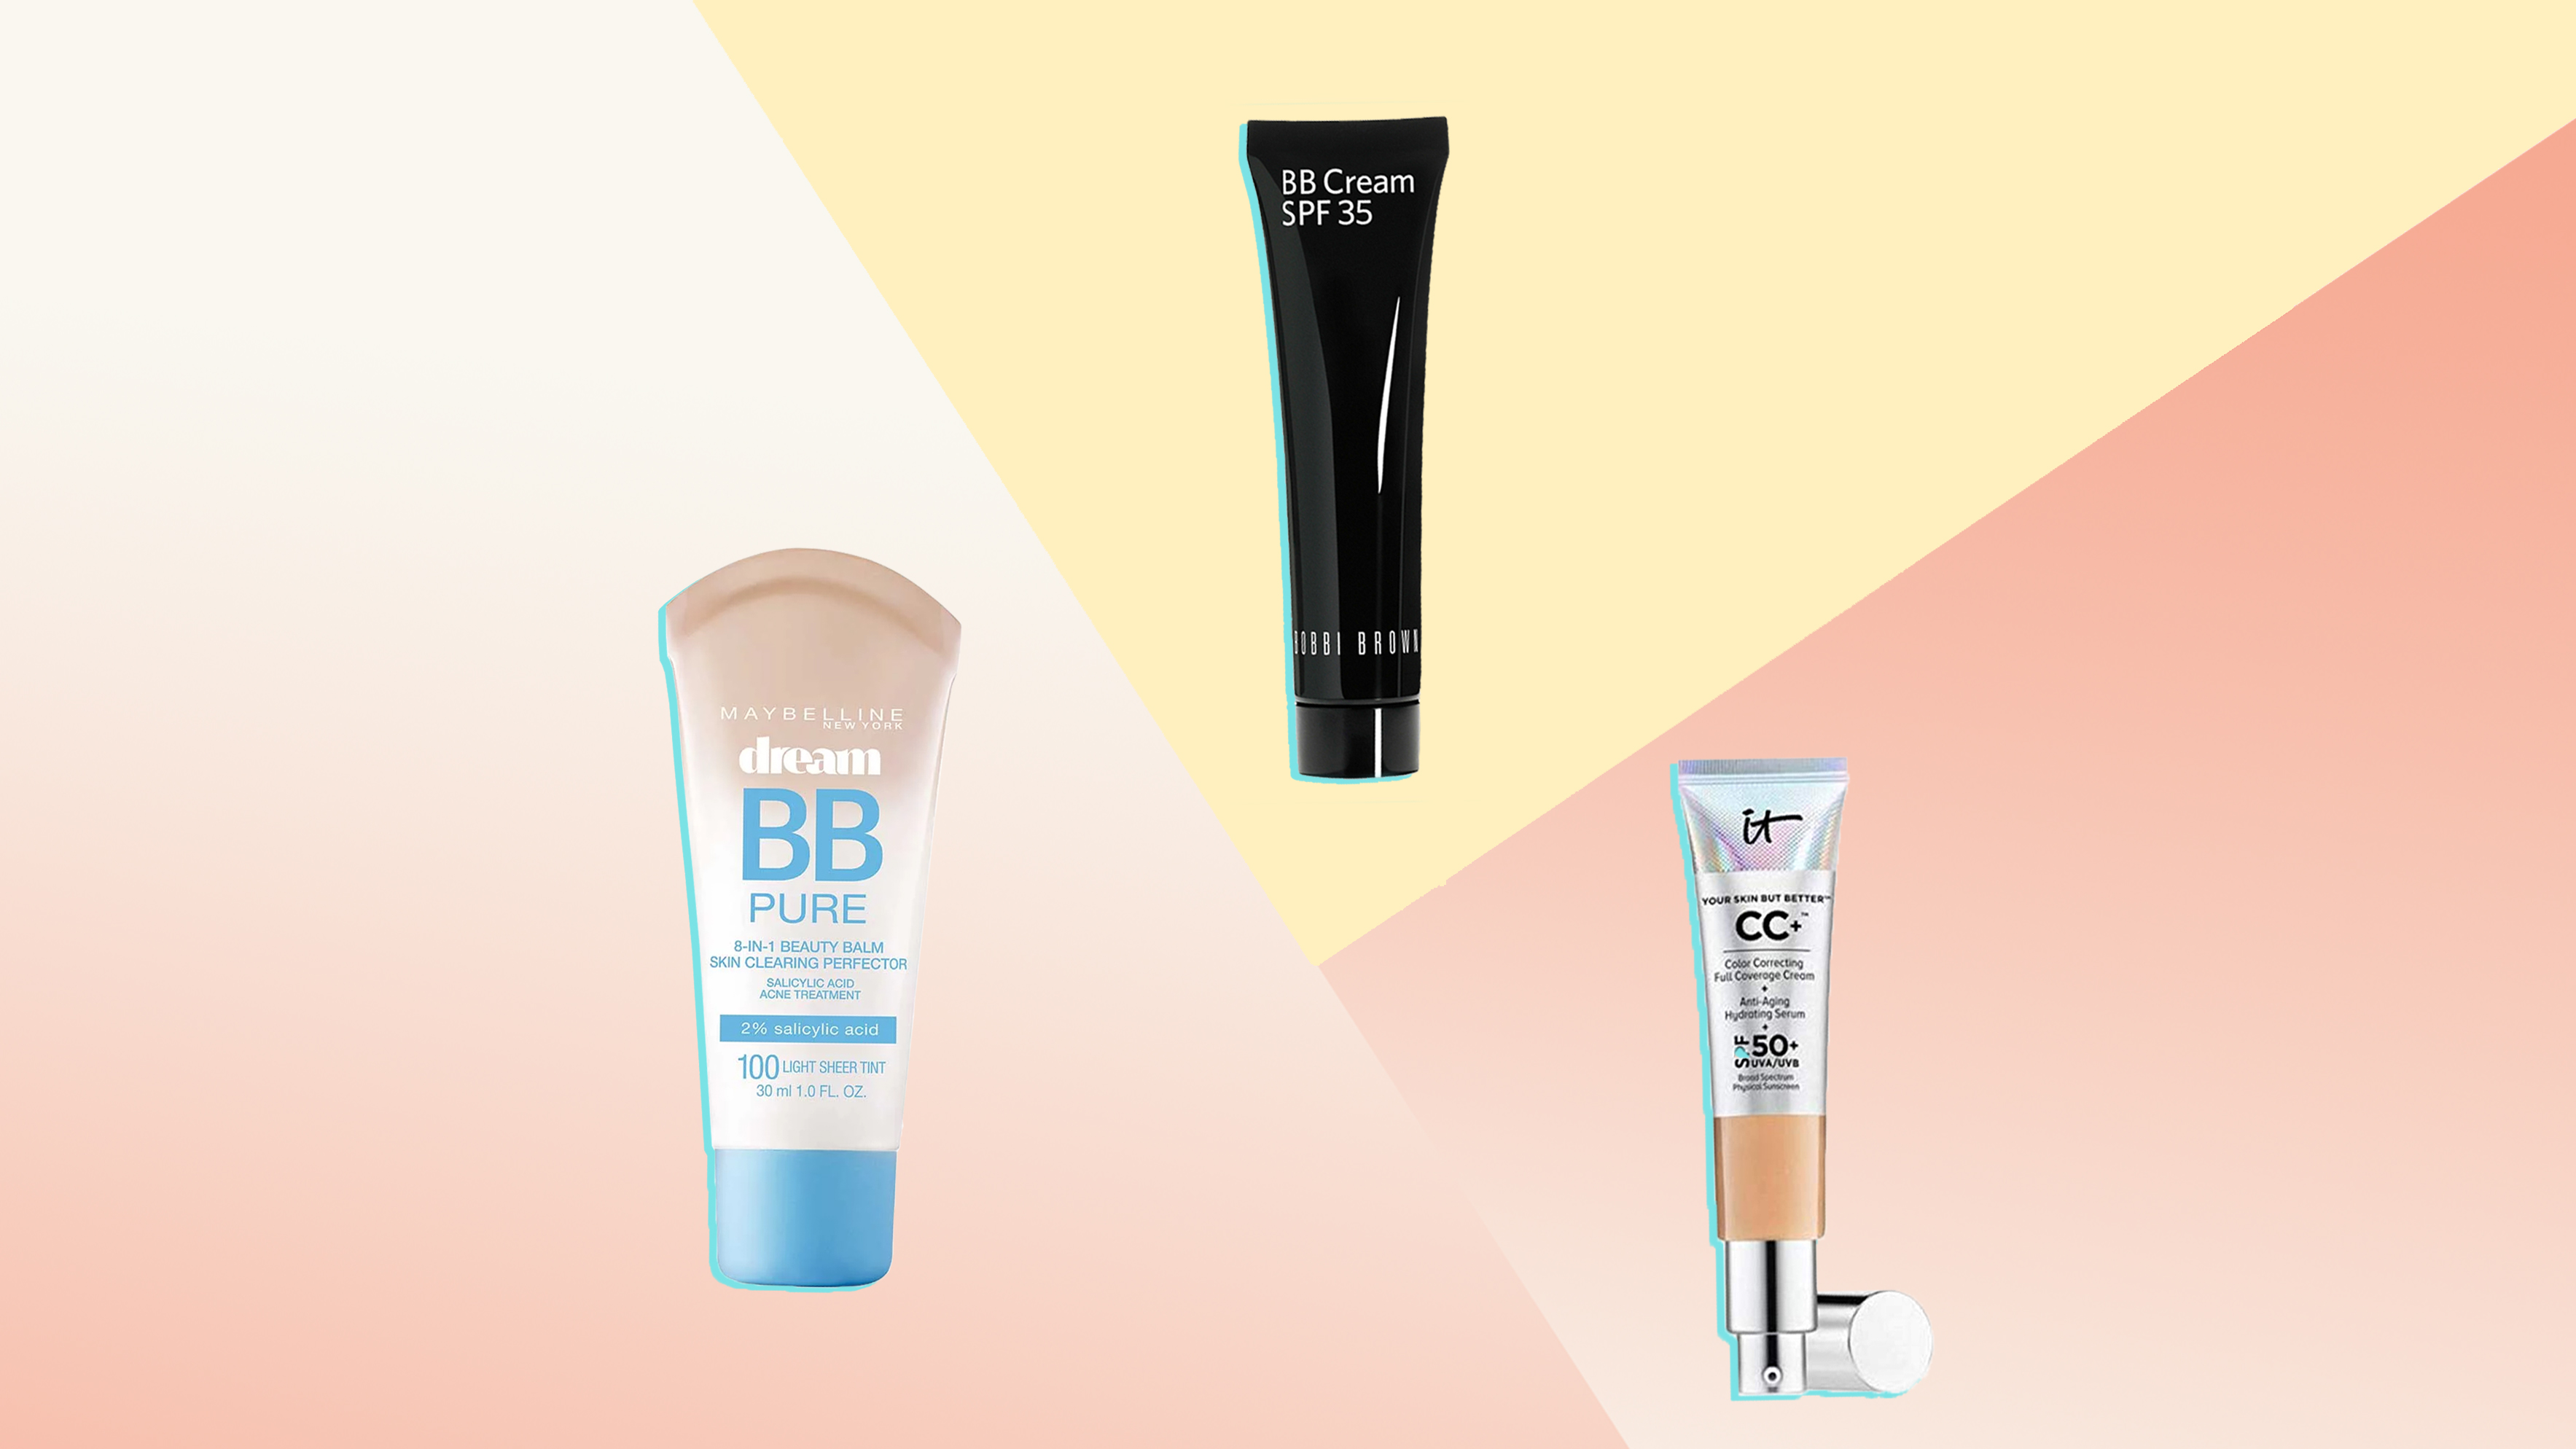 Maybelline Dream Pure BB 8-in-1 Skin Clearing Perfector BB Cream SPF 35 BOBBI BROWN It Cosmetics Your Skin but Better CC Cream with SPF 50 Plus Beauty Woman Women Cosmetics Product